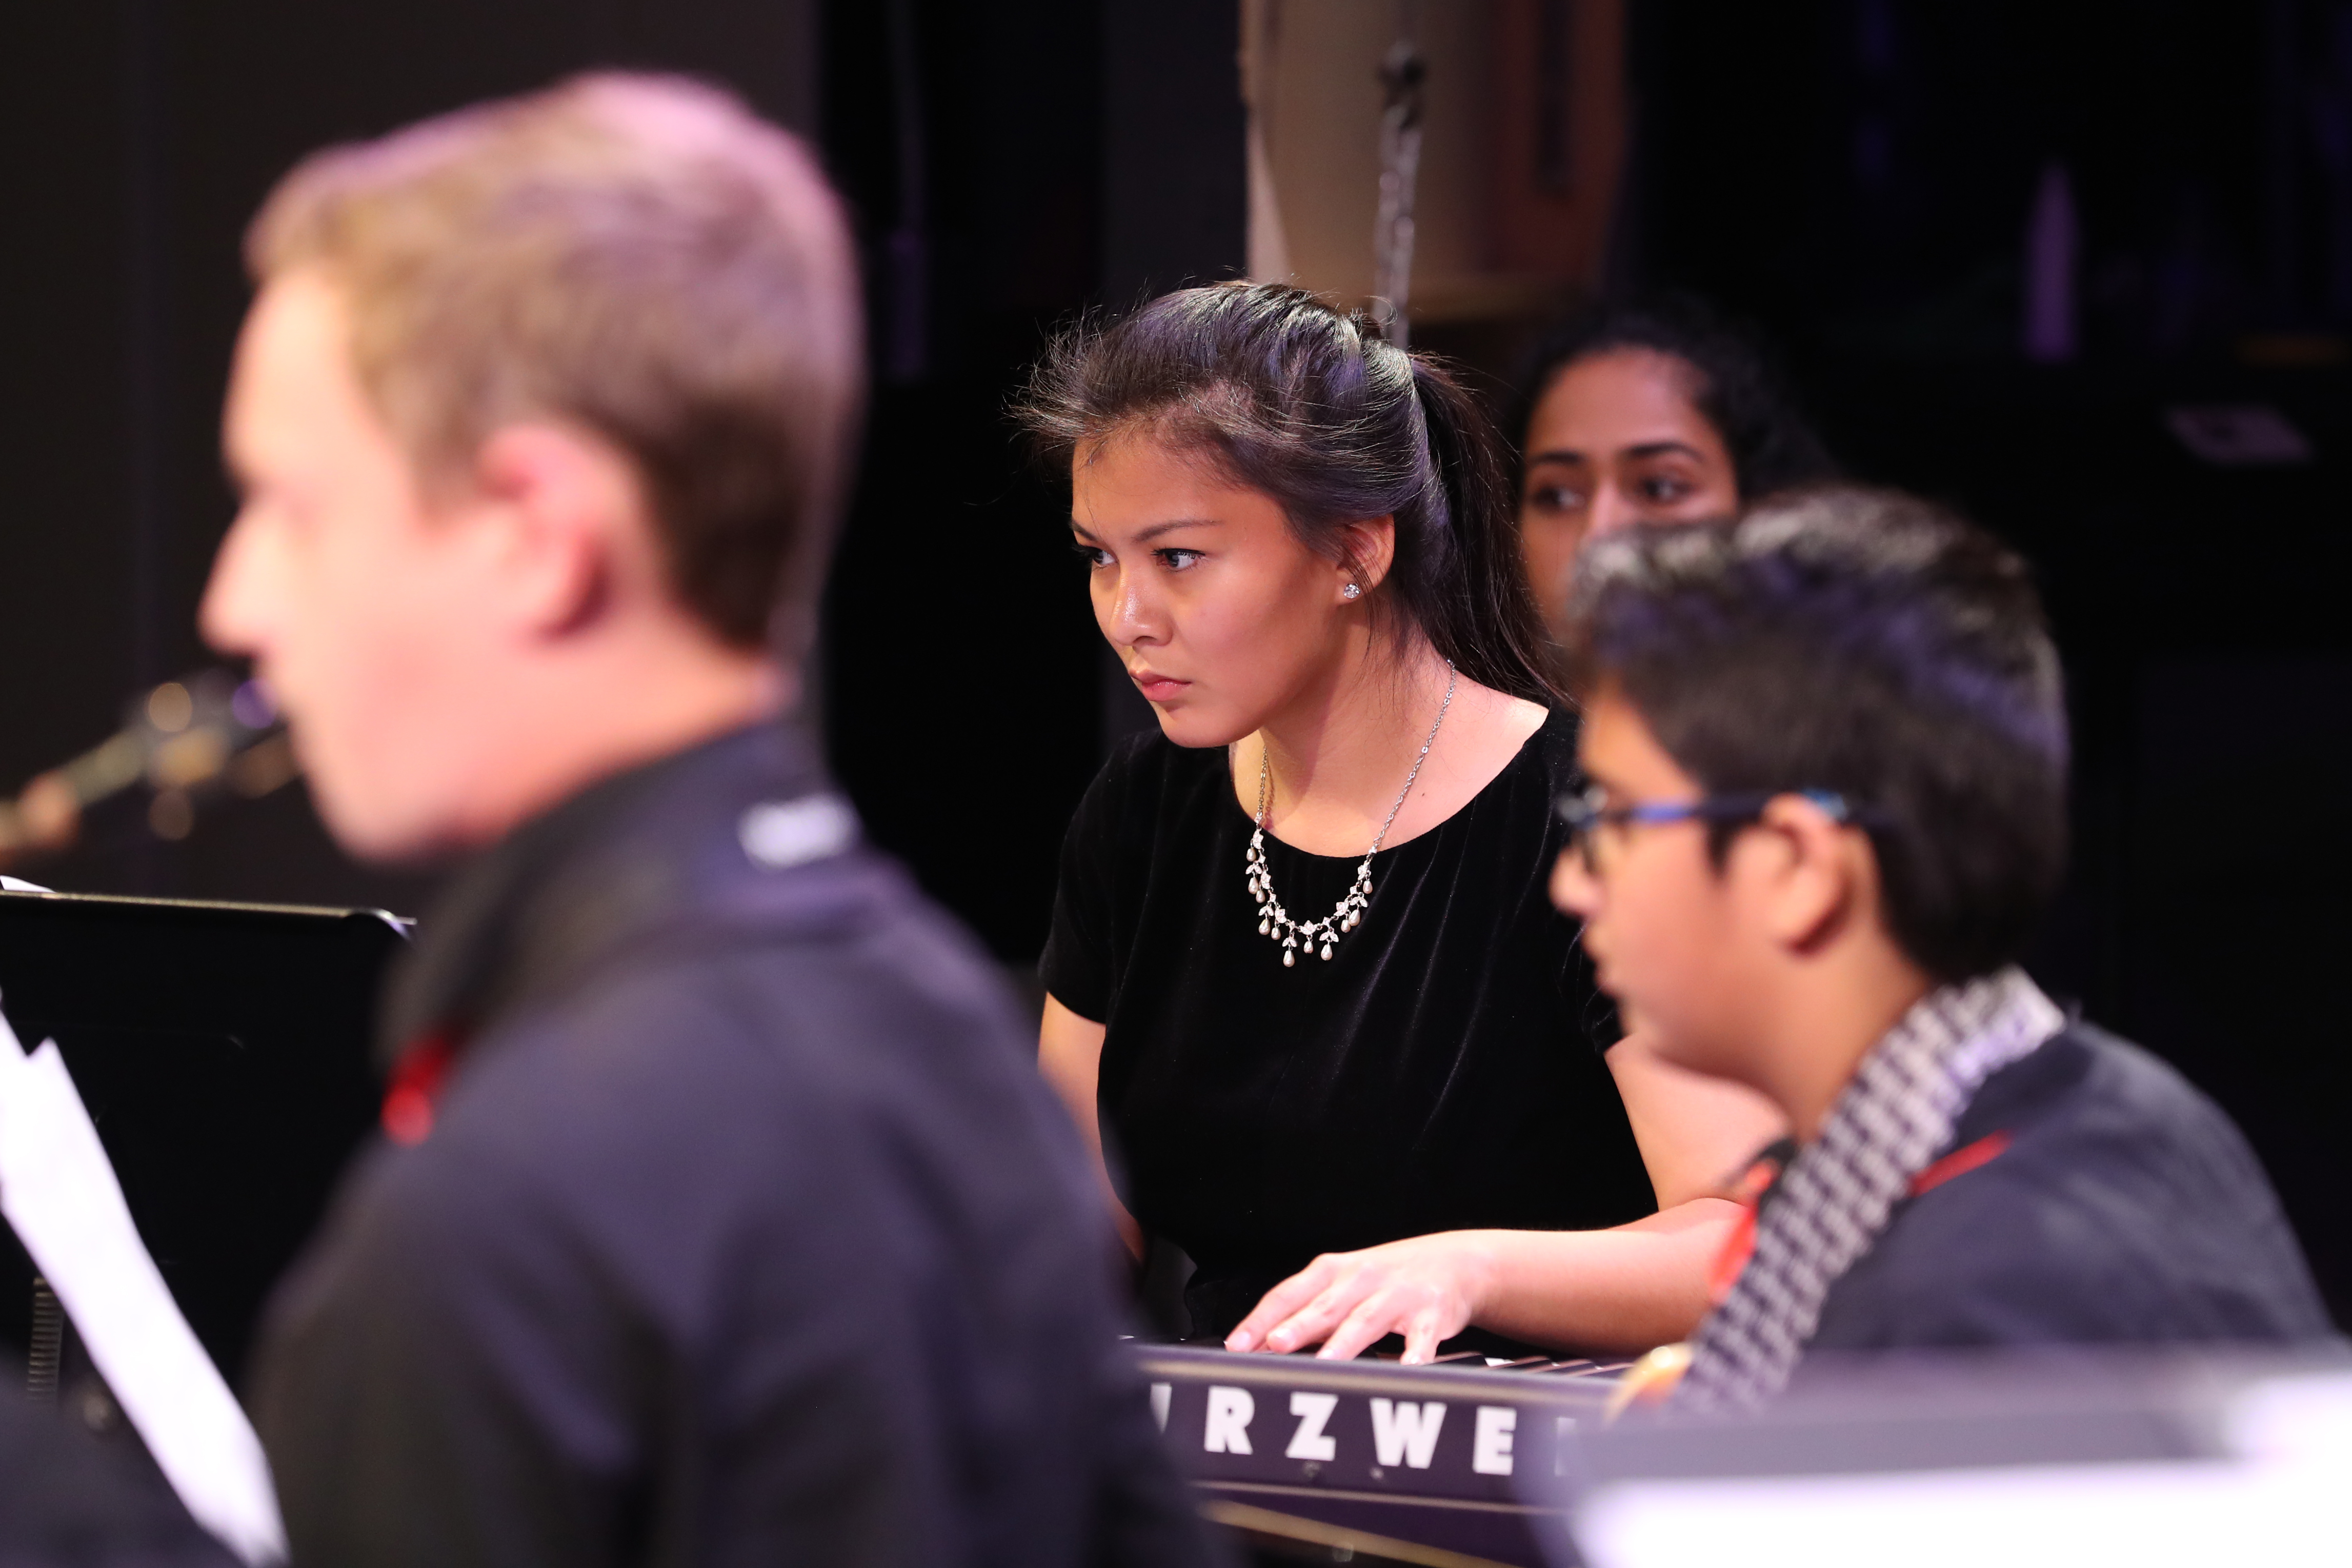 Photo of jazz band keyboardist in action